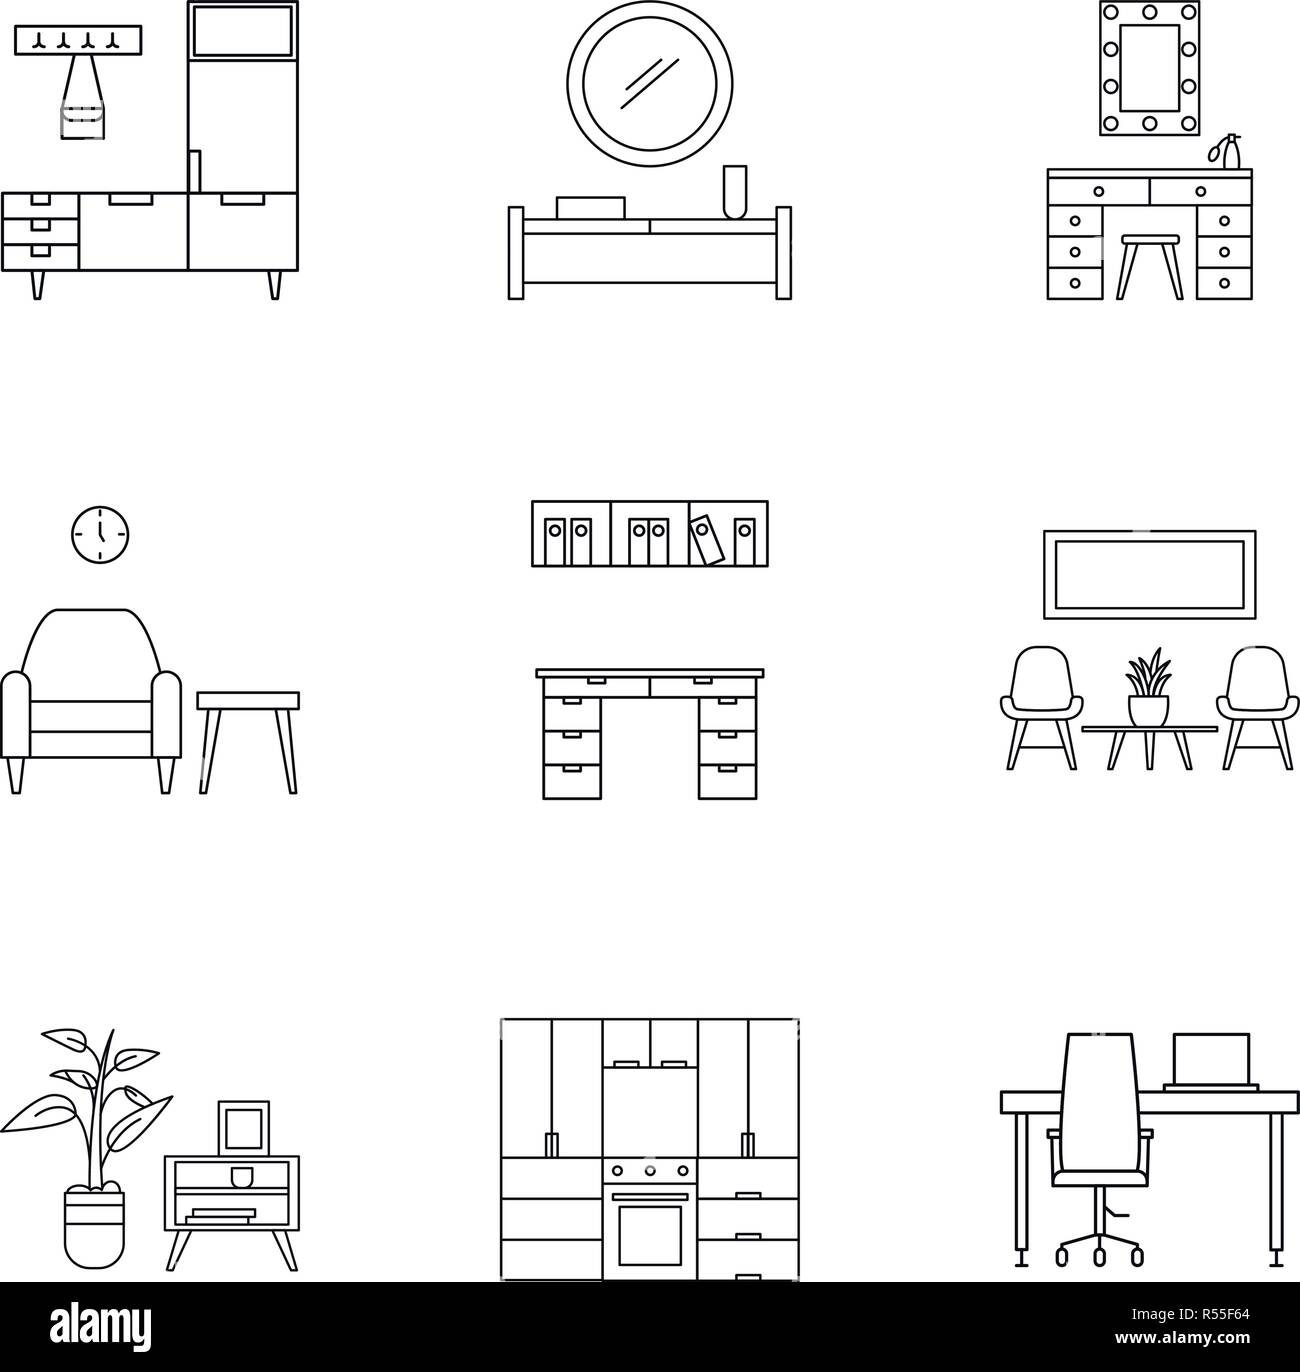 Bed Icons On White Background Stock Photos & Bed Icons On ... on bed lifters, bed texture, bed desktop, bed seat cushion, bed on beach, bed bolsters, bed people, bed queen, bed on stilts, bed cooler, bed bunker, bed railing, bed for disabled at home,